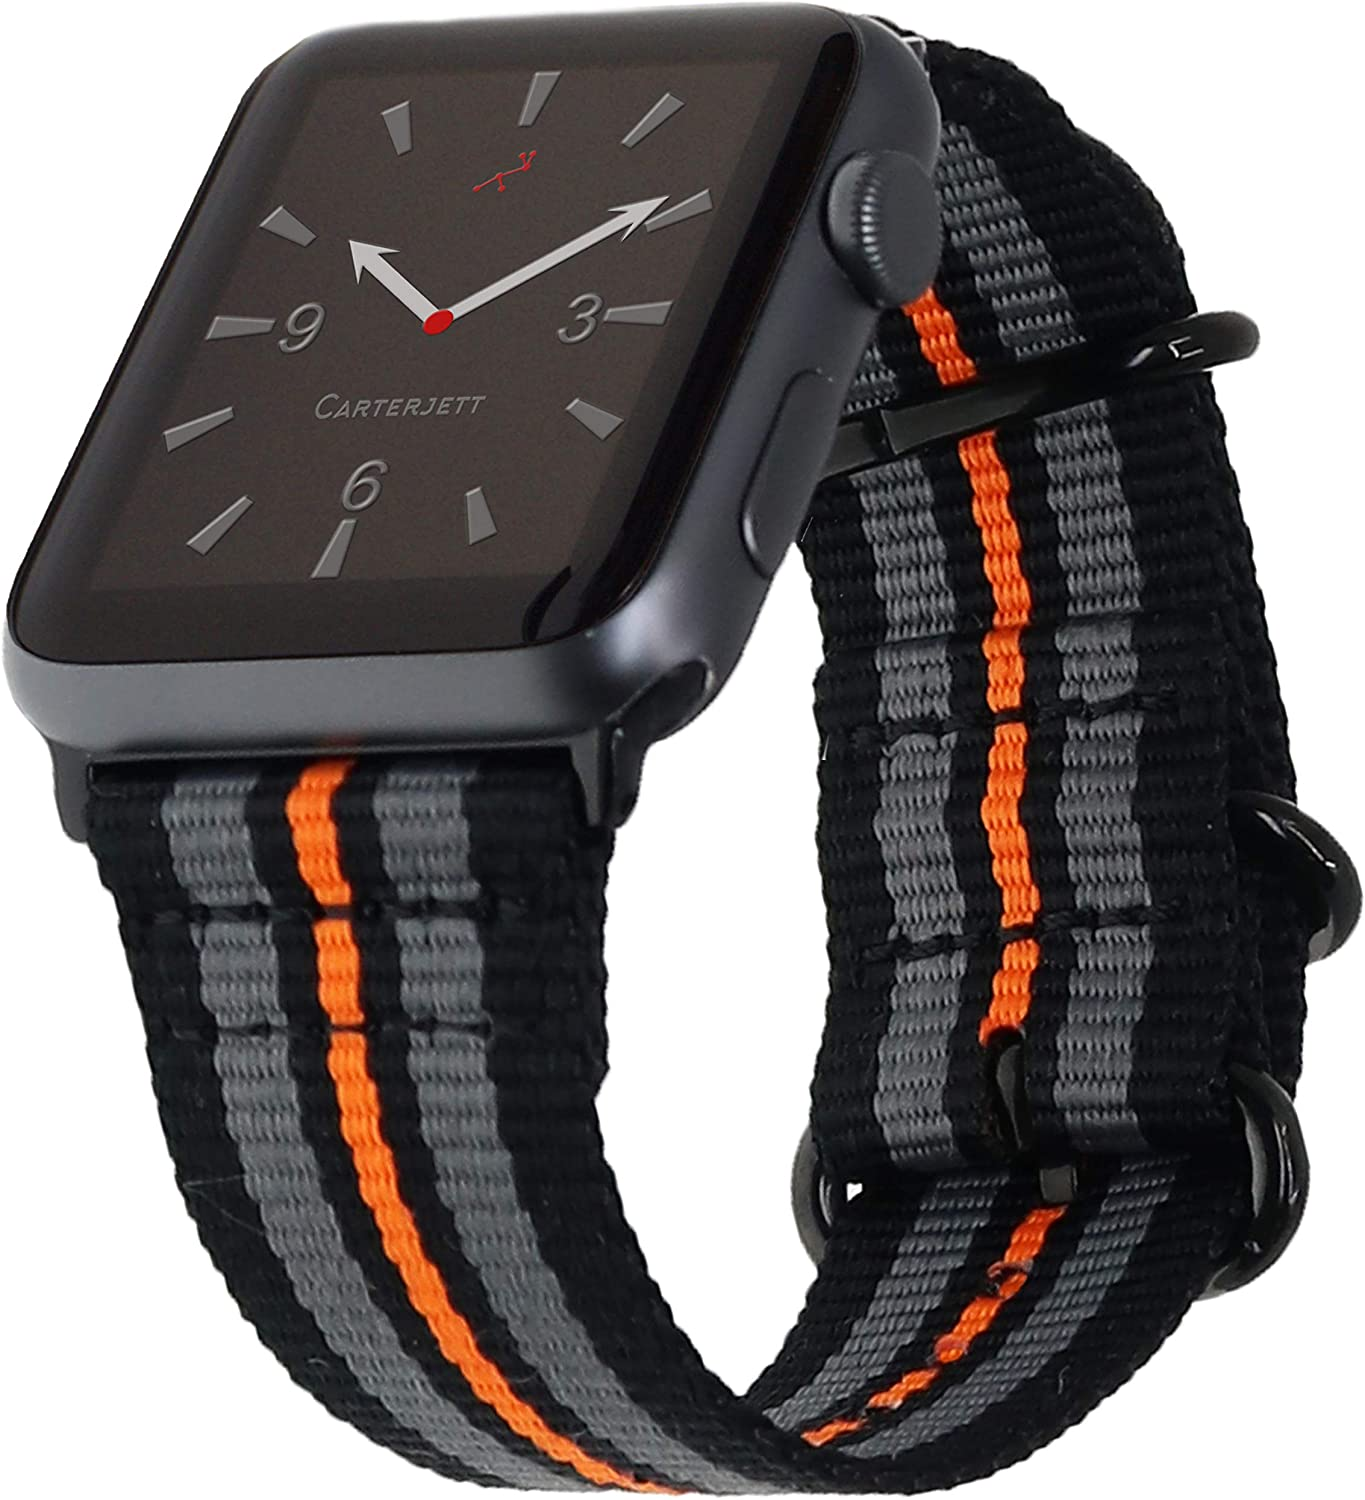 """Carterjett Extra Large Nylon Compatible with Apple Watch Band 42mm 44mm XL Black Replacement iWatch Band 8-10.5"""" Wrists Long Woven Military Loop for Series 5 4 3 2 1 Sport (42 44 XXL Racing Stripe)"""